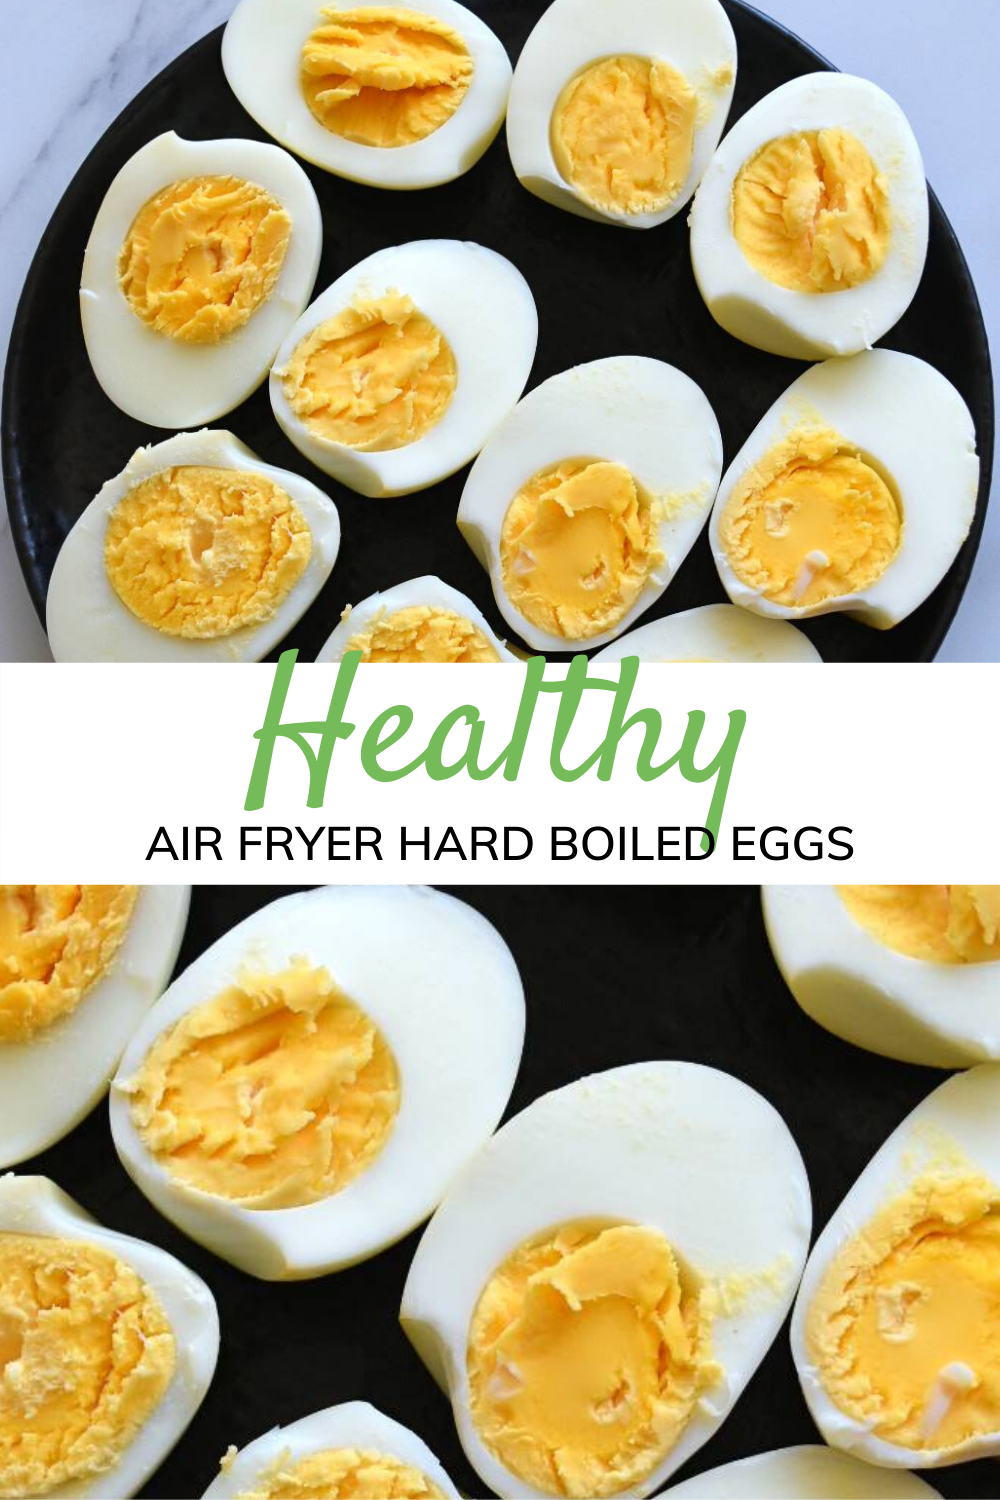 Air Fryer Hard Boiled Eggs Recipe in 2020 Tasty